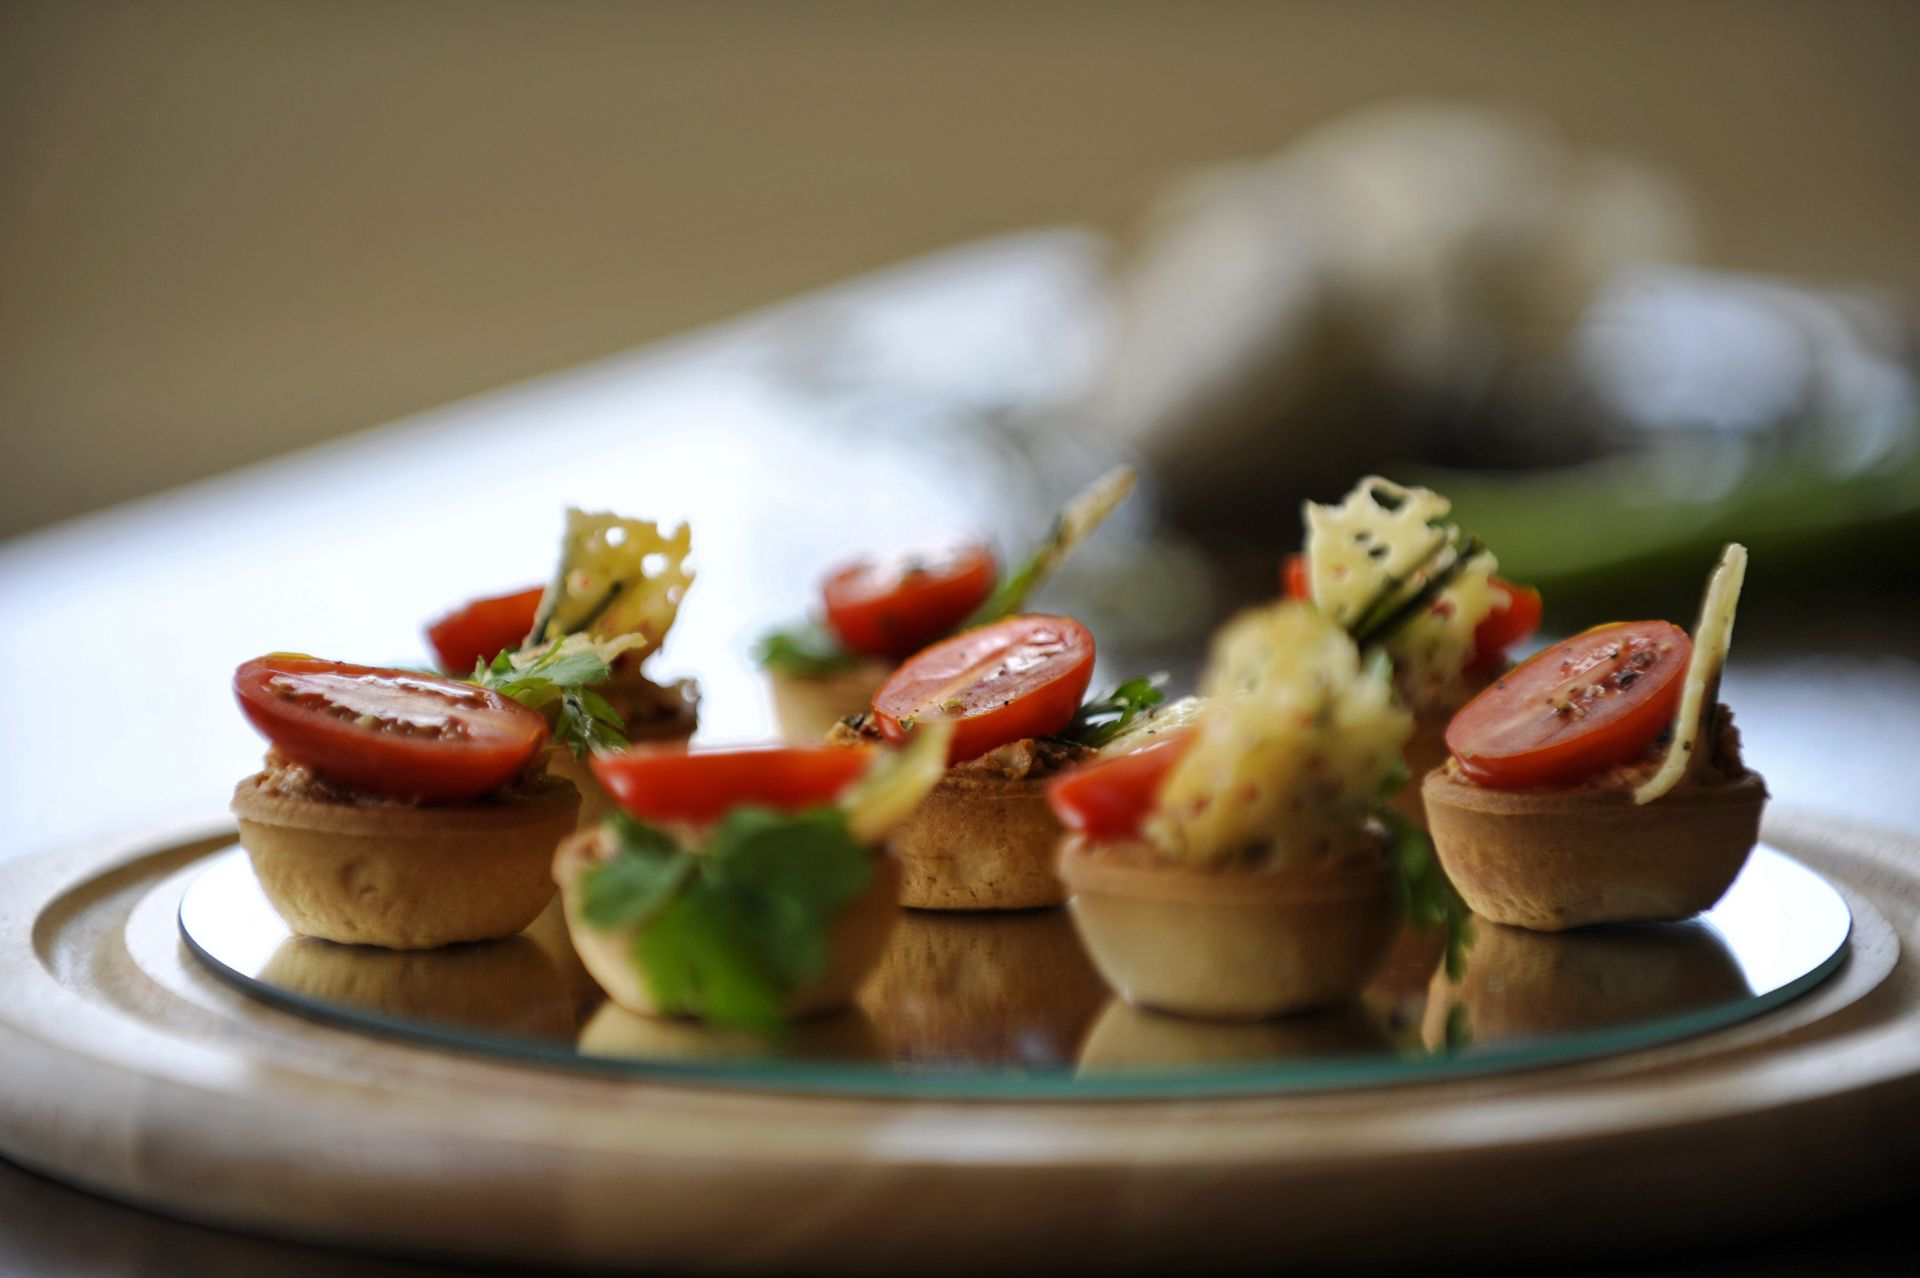 Tayberry foods canap s vegetarian for Vegetarian canape